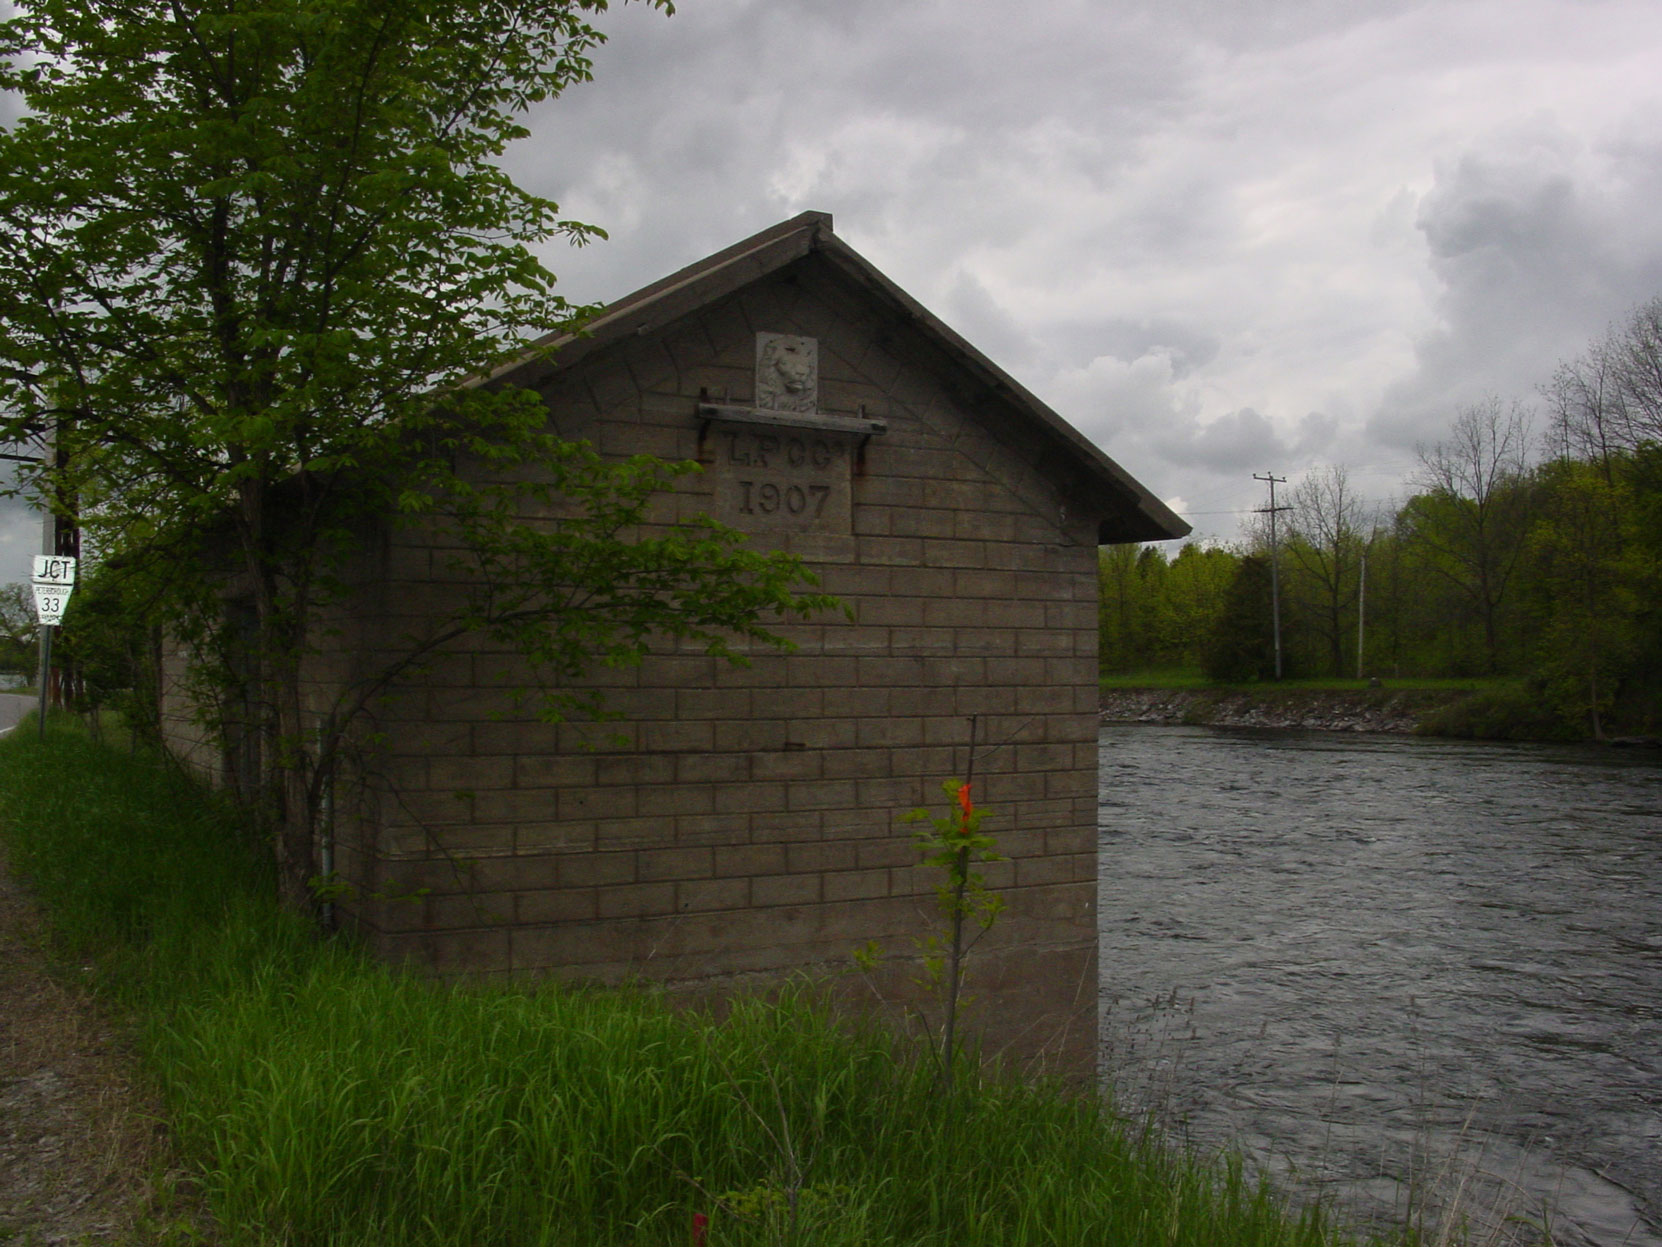 The Lakefield Portland Cement Company pumphouse, built in 1907, on the Otanabee River in Lakefield, Ontario (photo by Author)